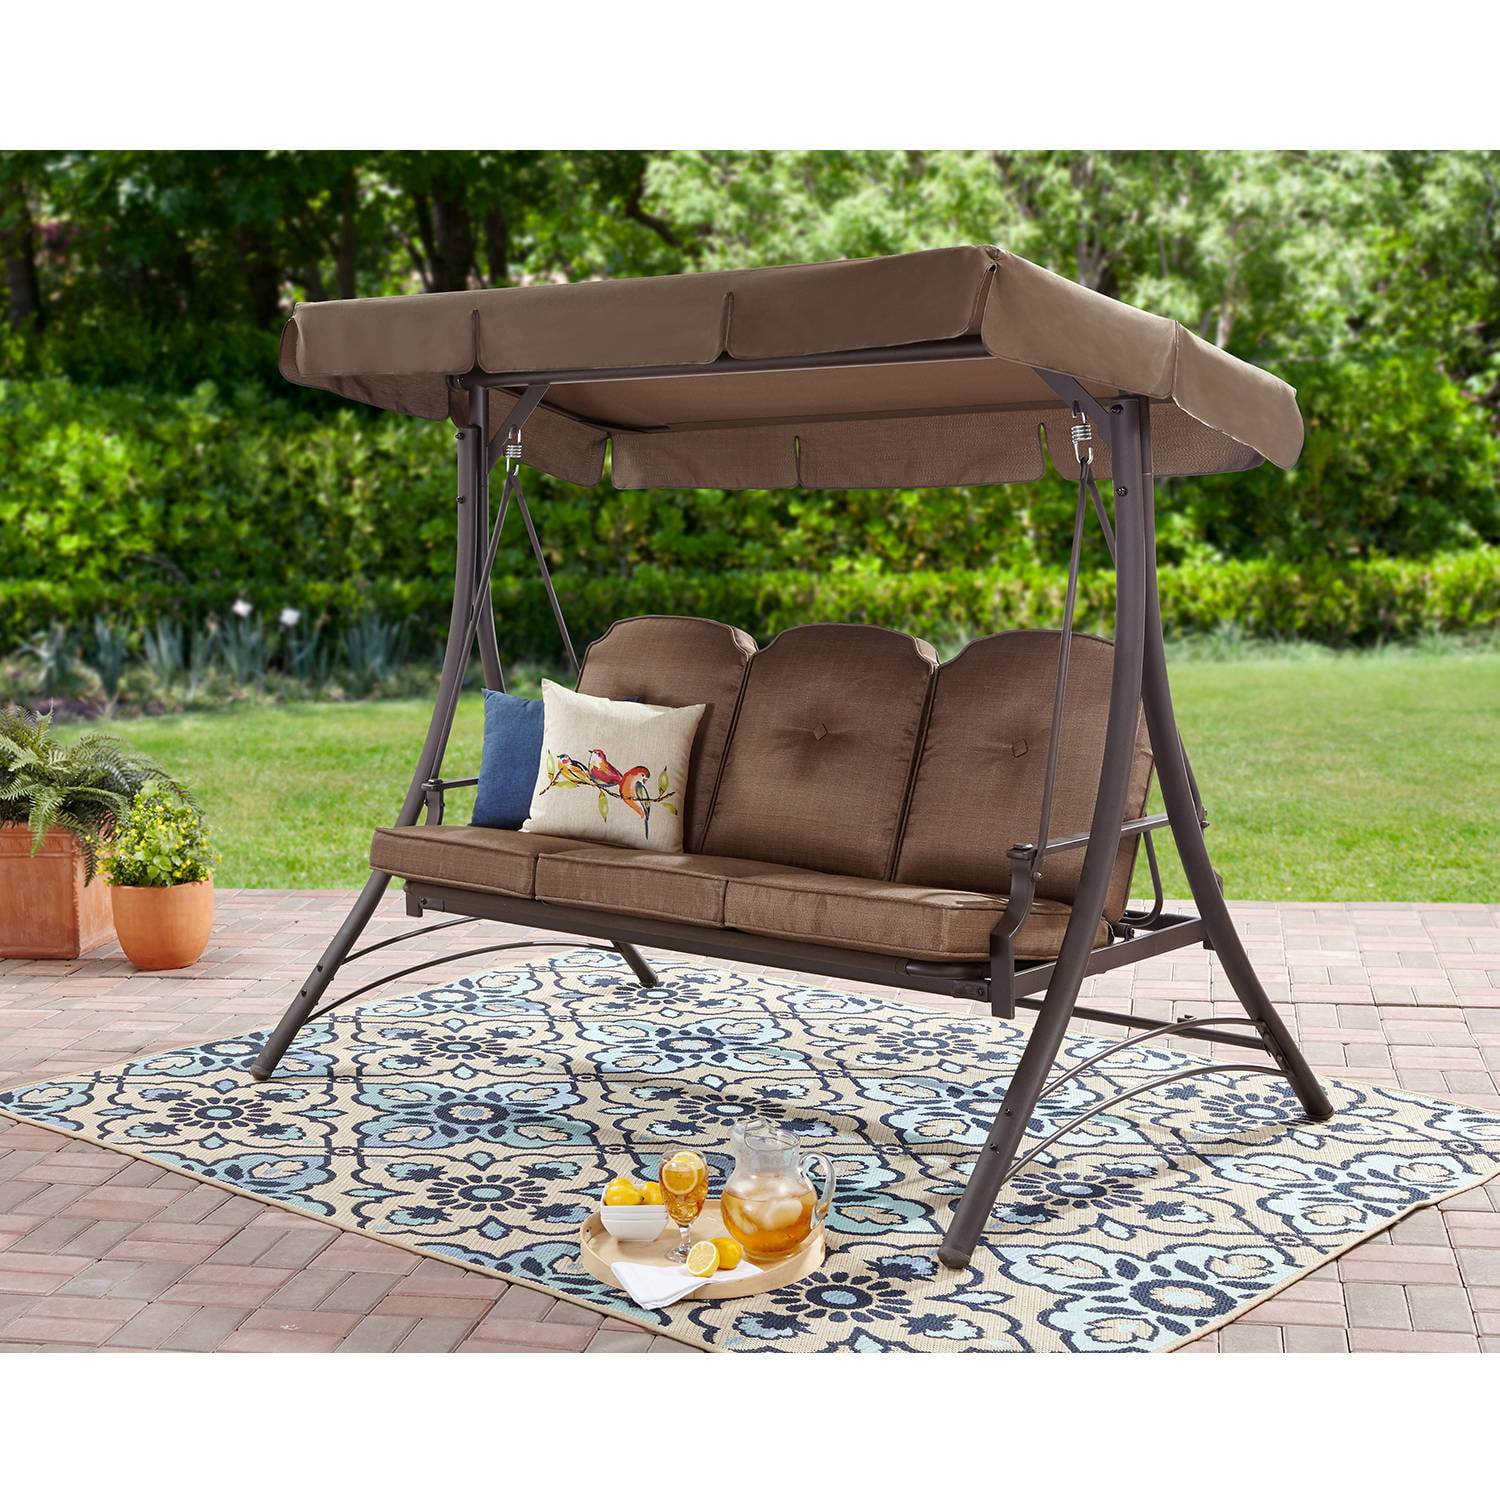 patio set cover weatherproof convenience boutique canopy hammock swing outdoor zipper seat of picture